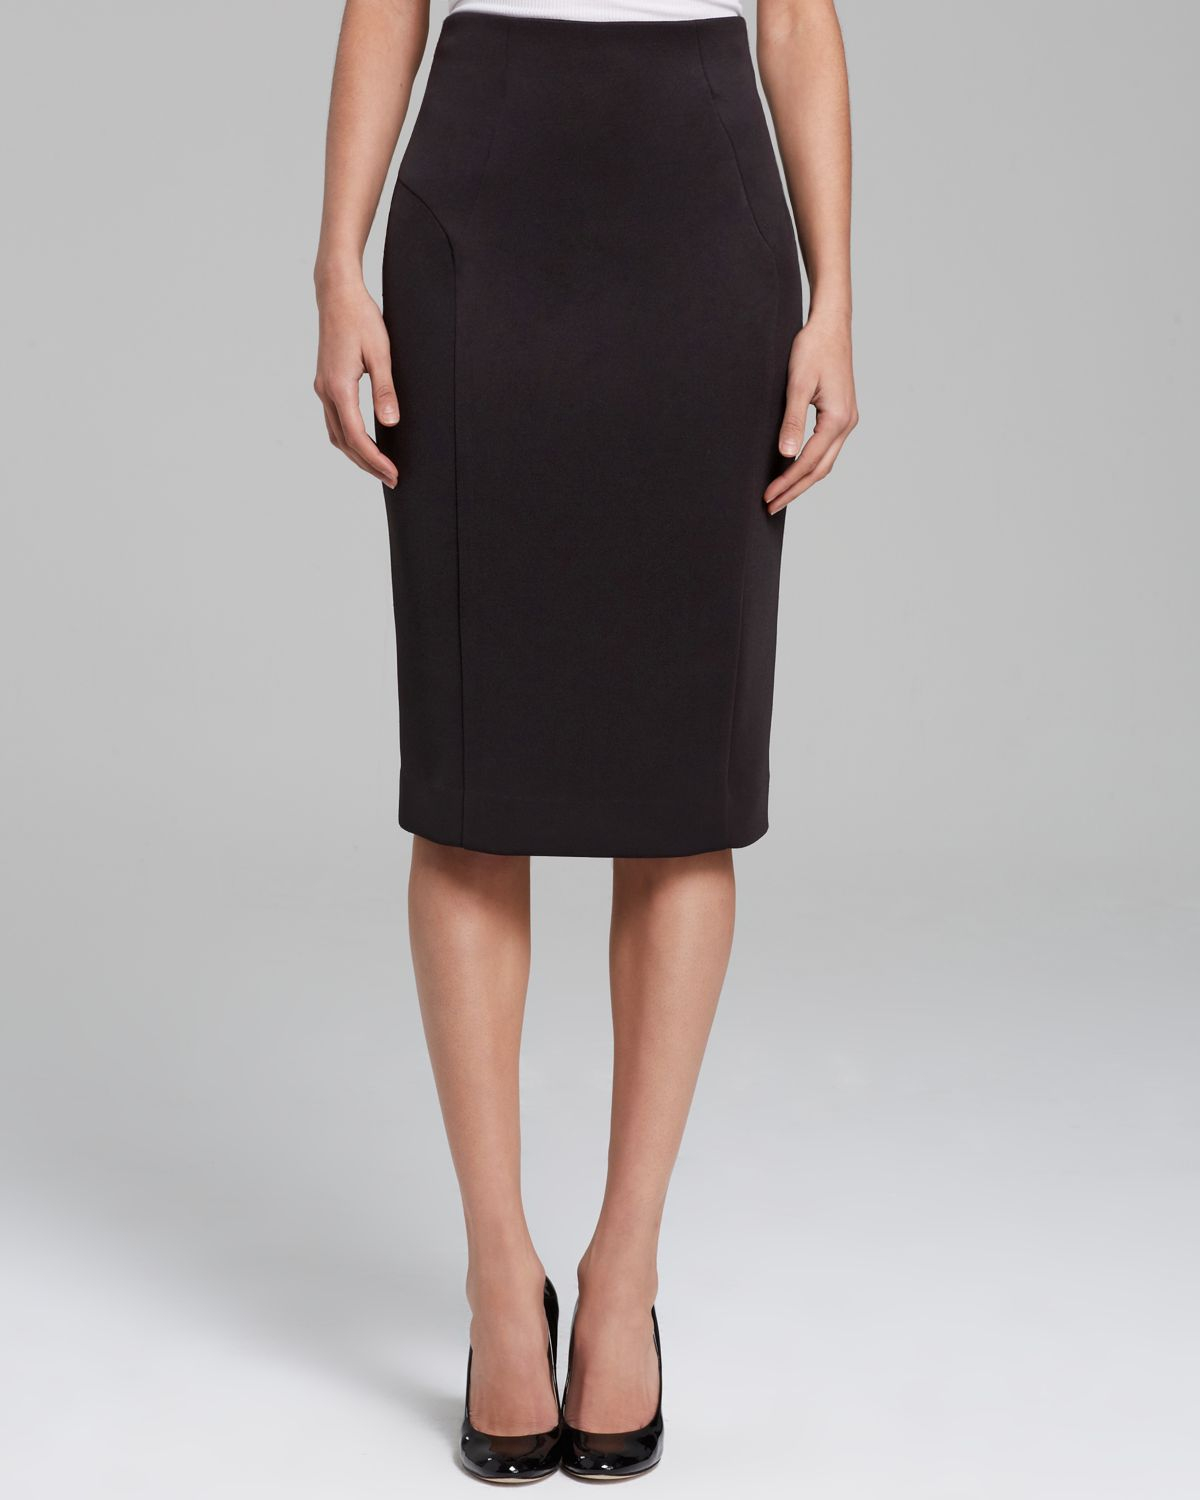 pencil skirt is a slim-fitting skirt with a straight, narrow cut, with elastic waist. The pencil skirt is usually worn either as a separate piece of sportswear or as part of a suit. 65% RYON 35% POLYESTER.